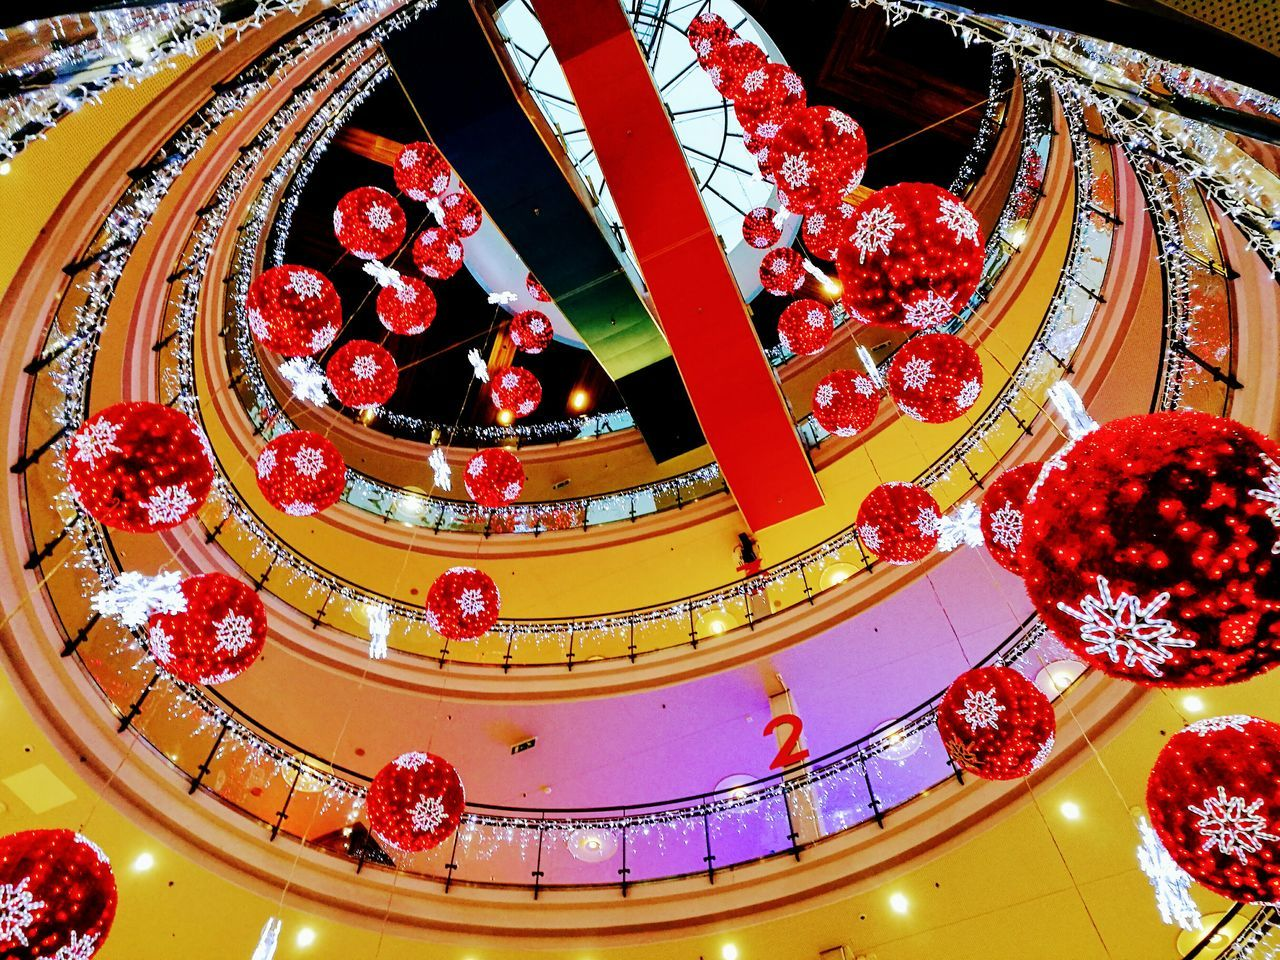 Architecture Indoors  Red No People Night Arts Culture And Entertainment Luxury Low Angle View Close-up Christmas Tree Helsinki Central Railway Station Helsinki,finland Finlandlovers Helsinki Kamppi Helsinki Finland Finlandia Finlandiaa Finland♥ Ceiling Finland_photolovers Christmas Lights Savonlinna Opera Festival Red Red Carpet Event Gambling